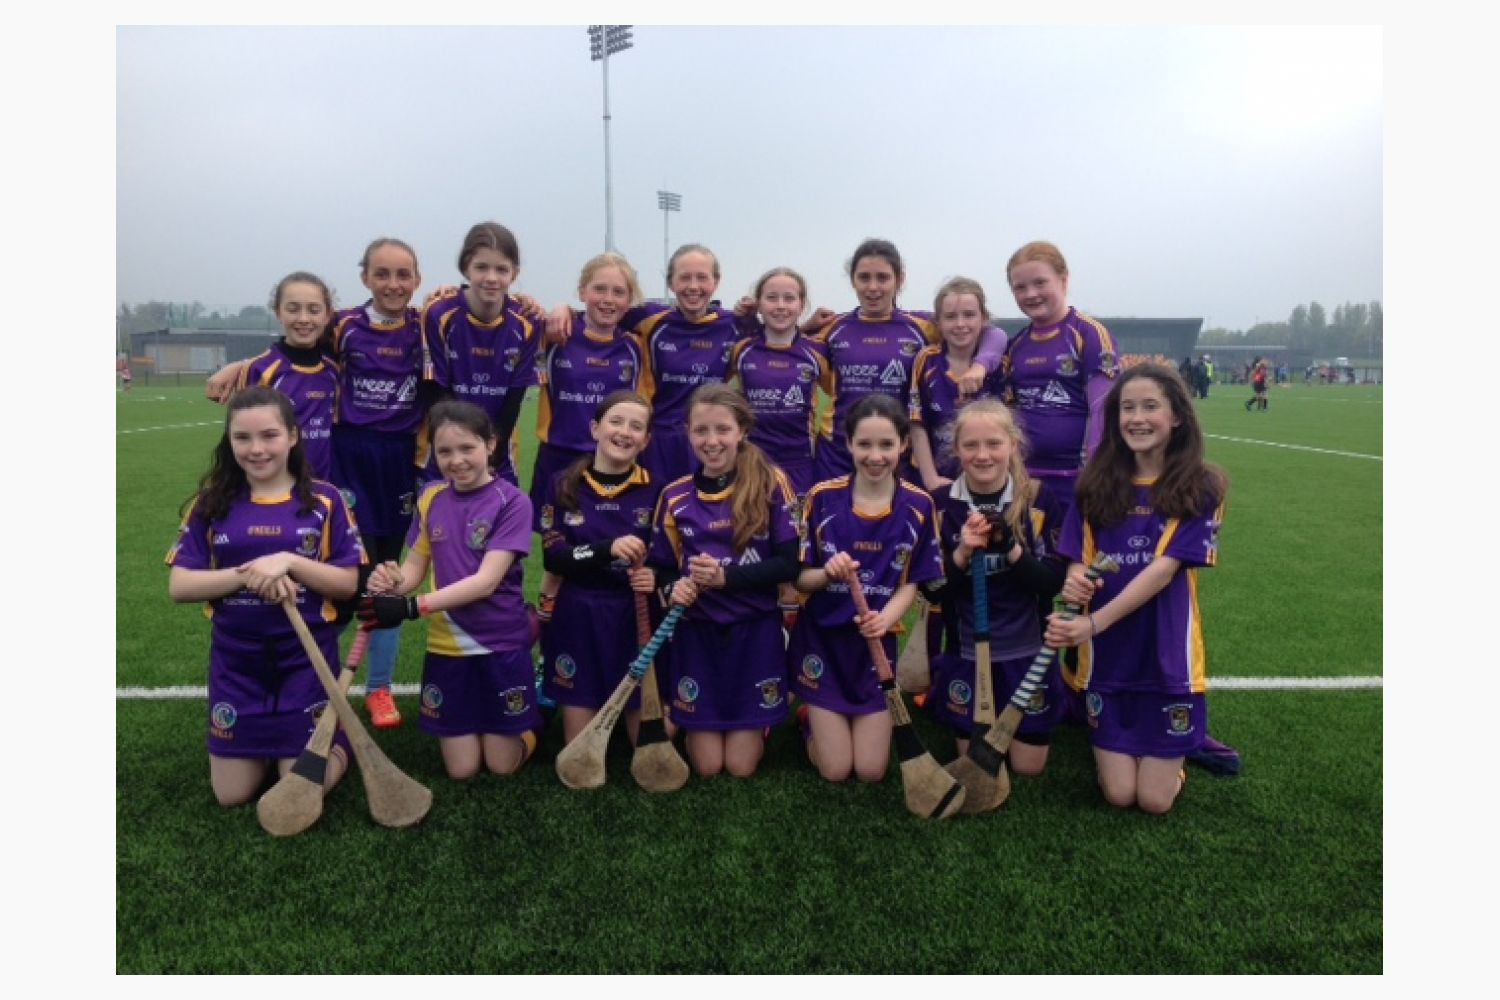 U12 Camogie Girls in Camán to Leinster blitz at National Sports Campus Abbotstown